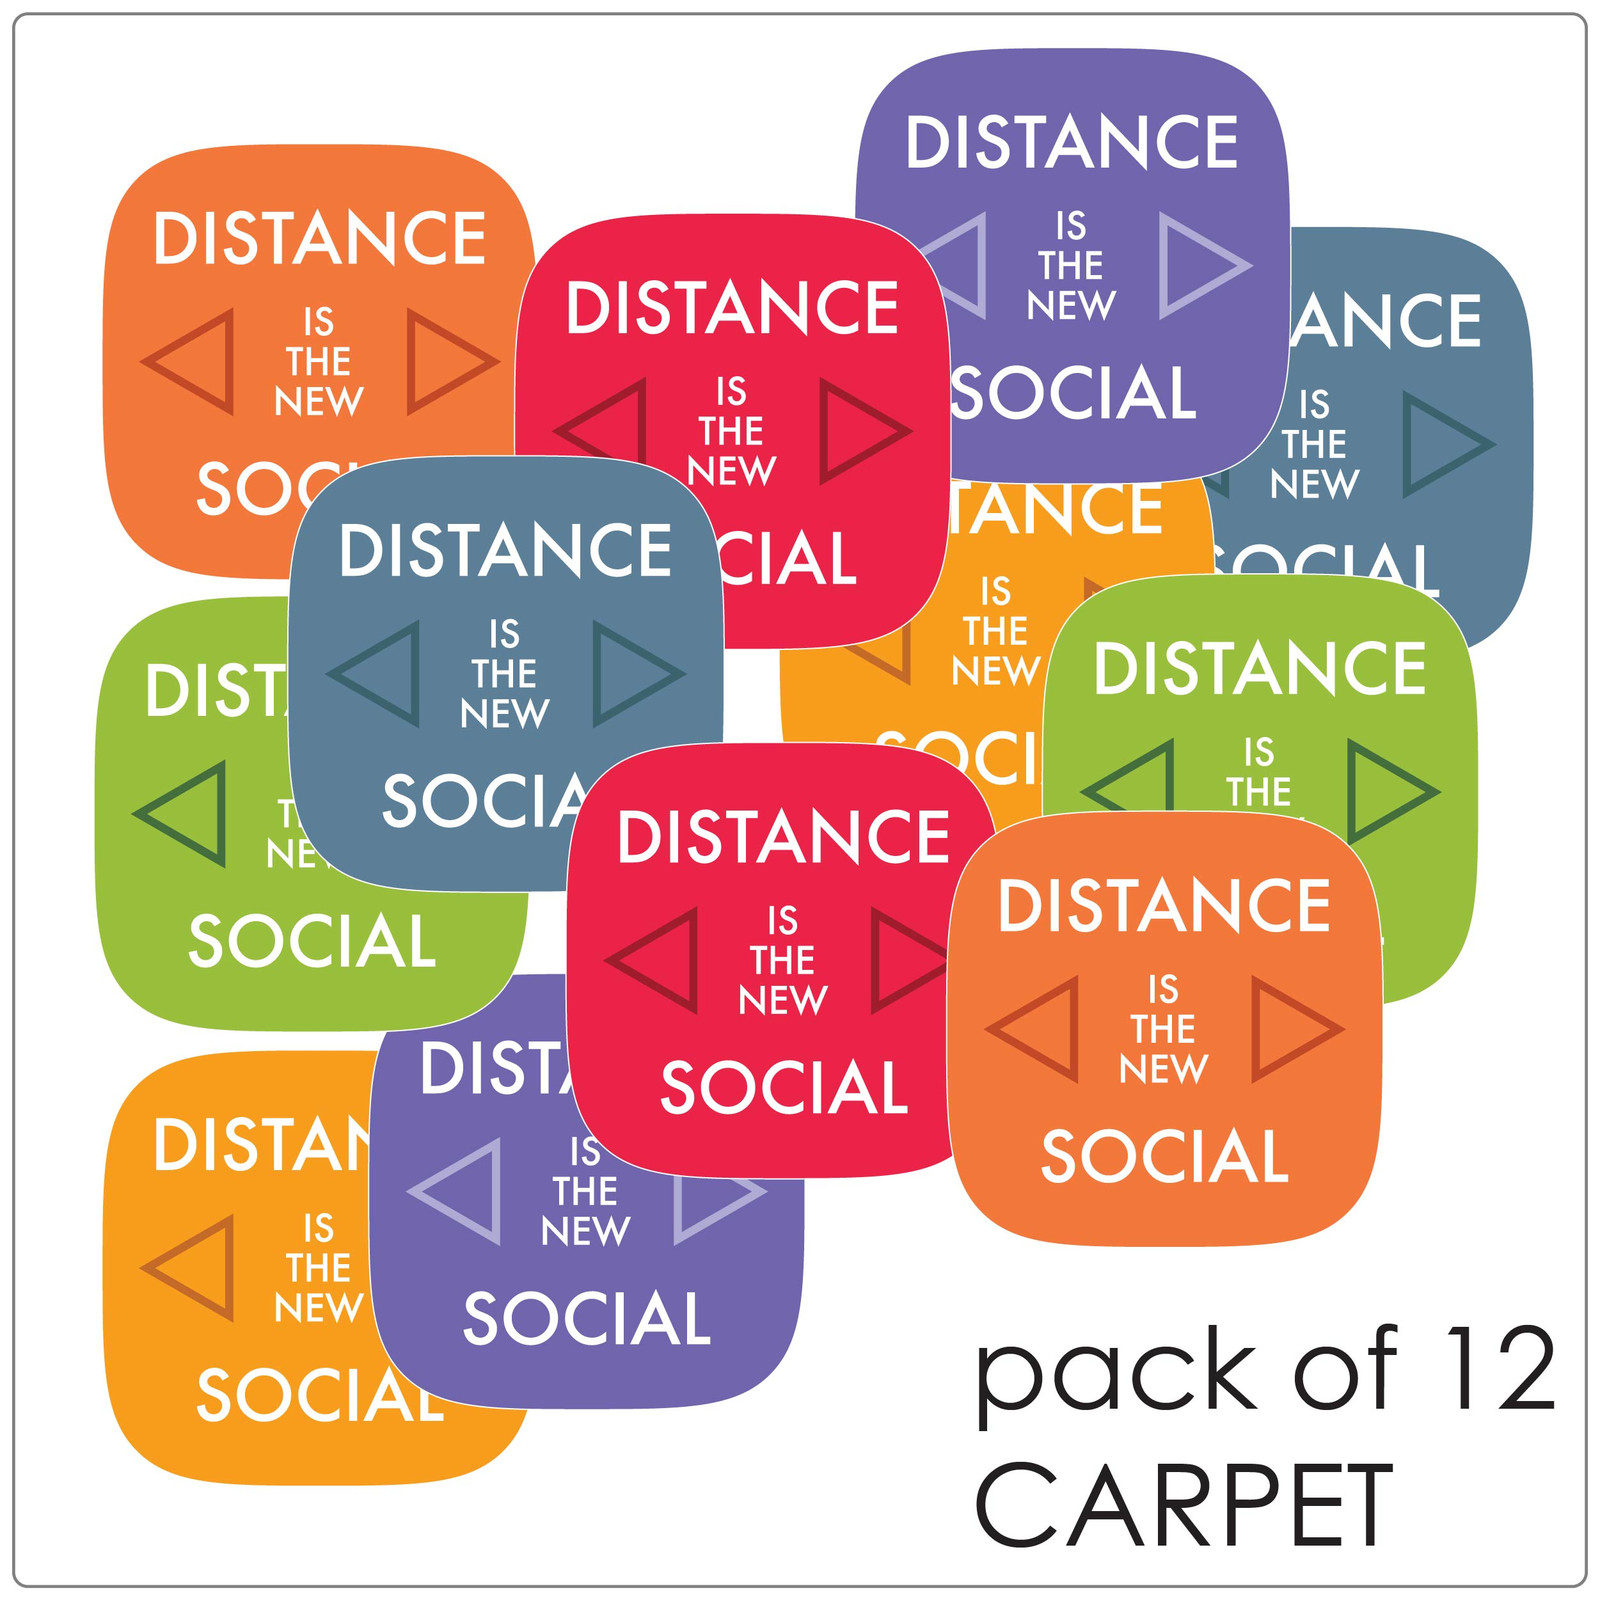 social distancing floor marker for carpet, pack of 10, contemporary mix Self-adhesive Corona virus floor marker to help social distancing